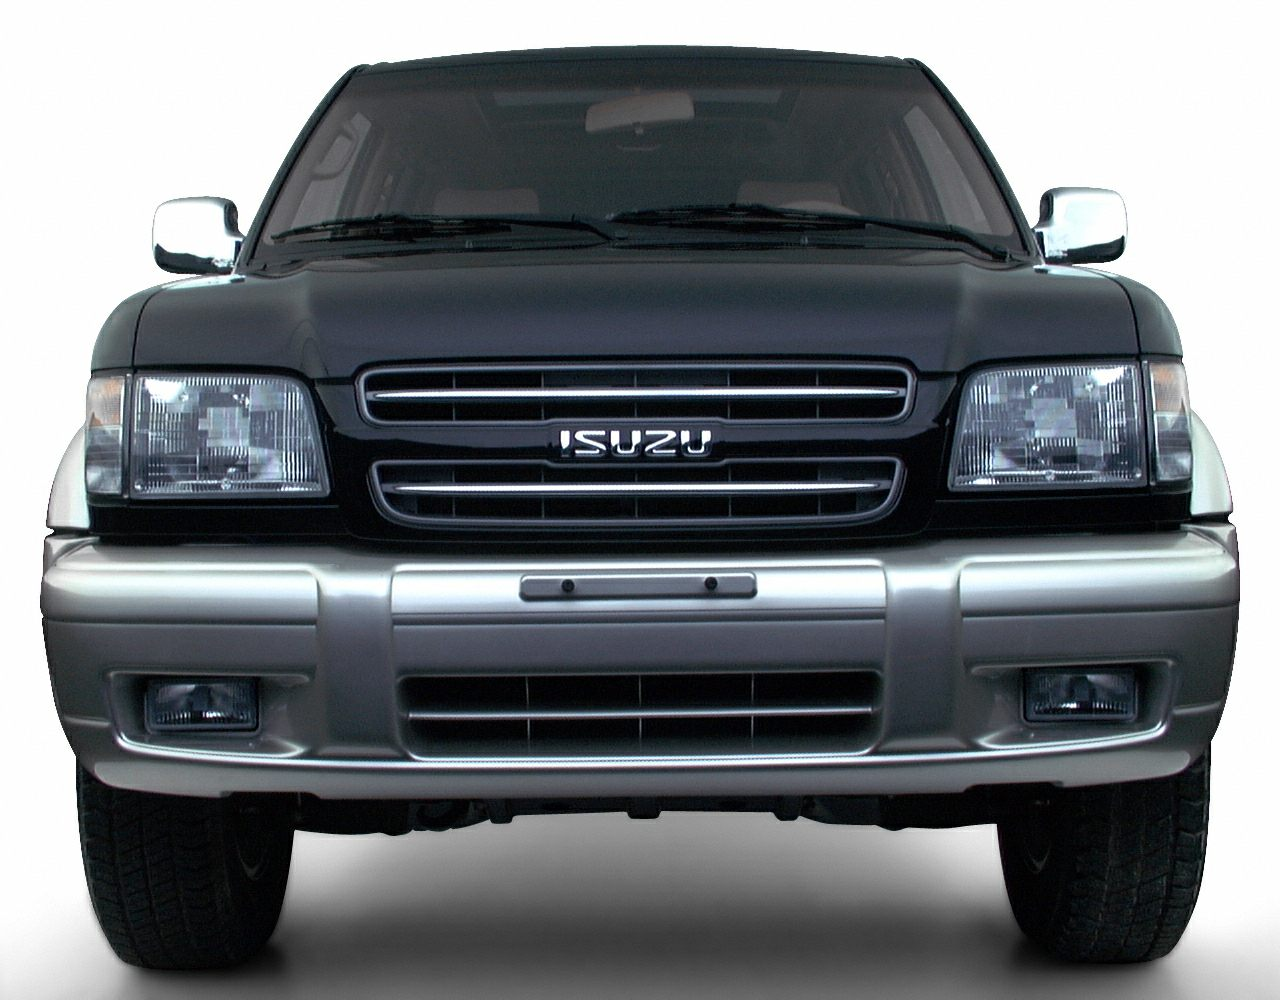 2000 Isuzu Trooper Exterior Photo